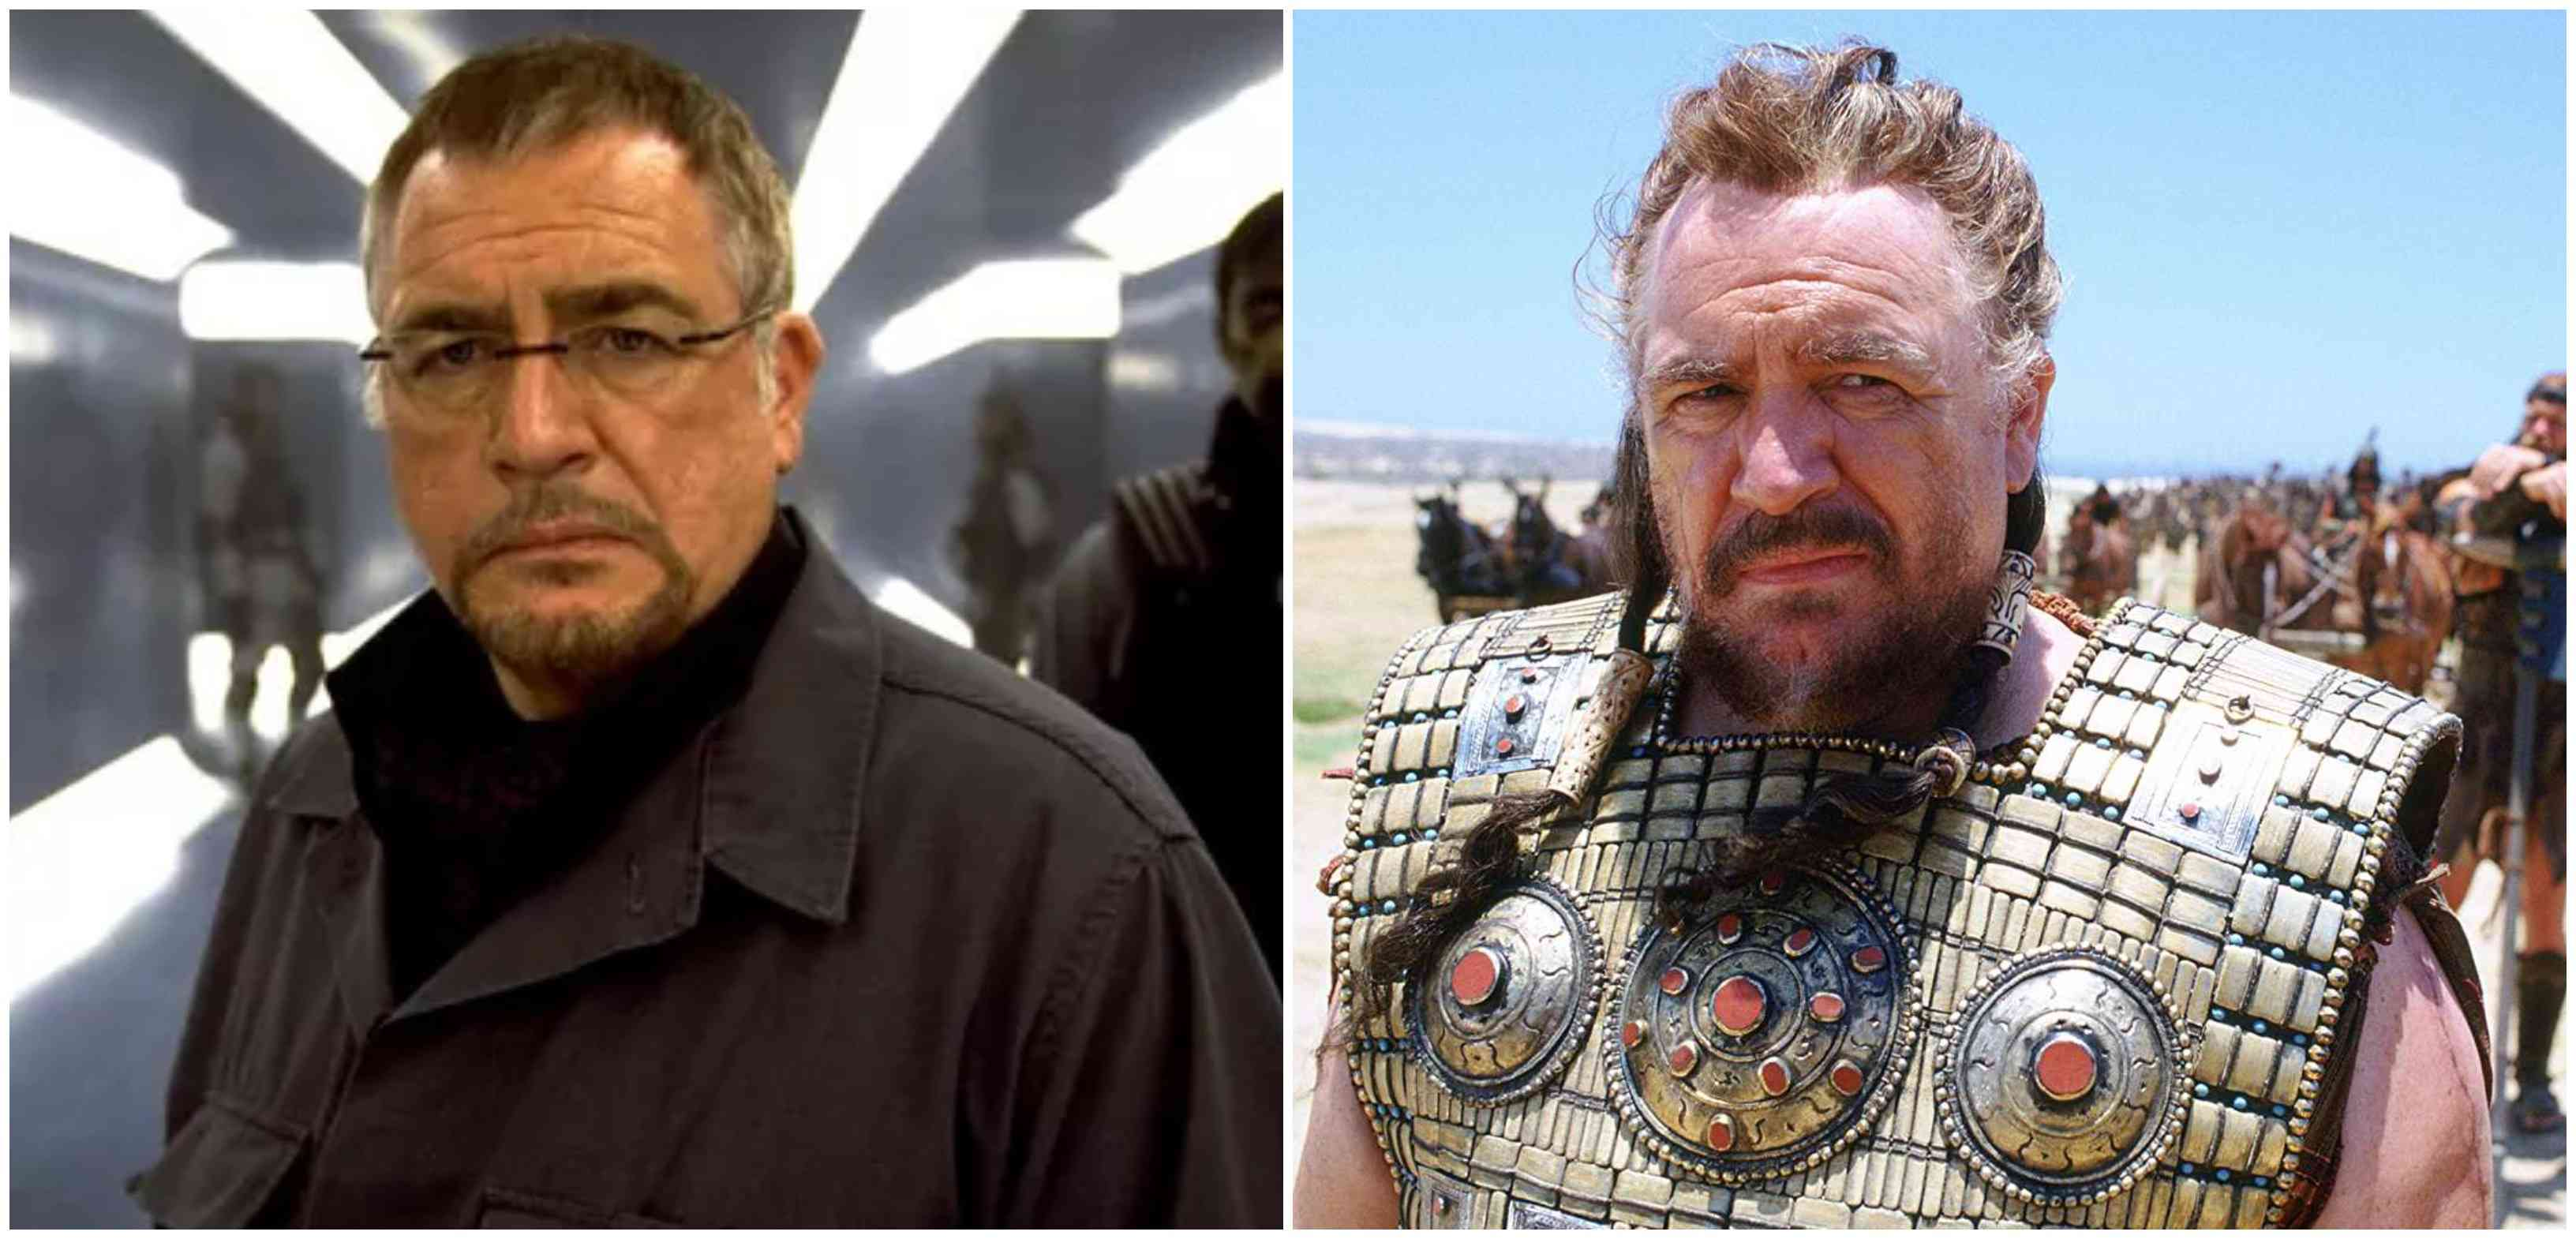 Brian Cox in X-Men 2 (left) and Troy. Courtesy Marvel/Warner Bros.